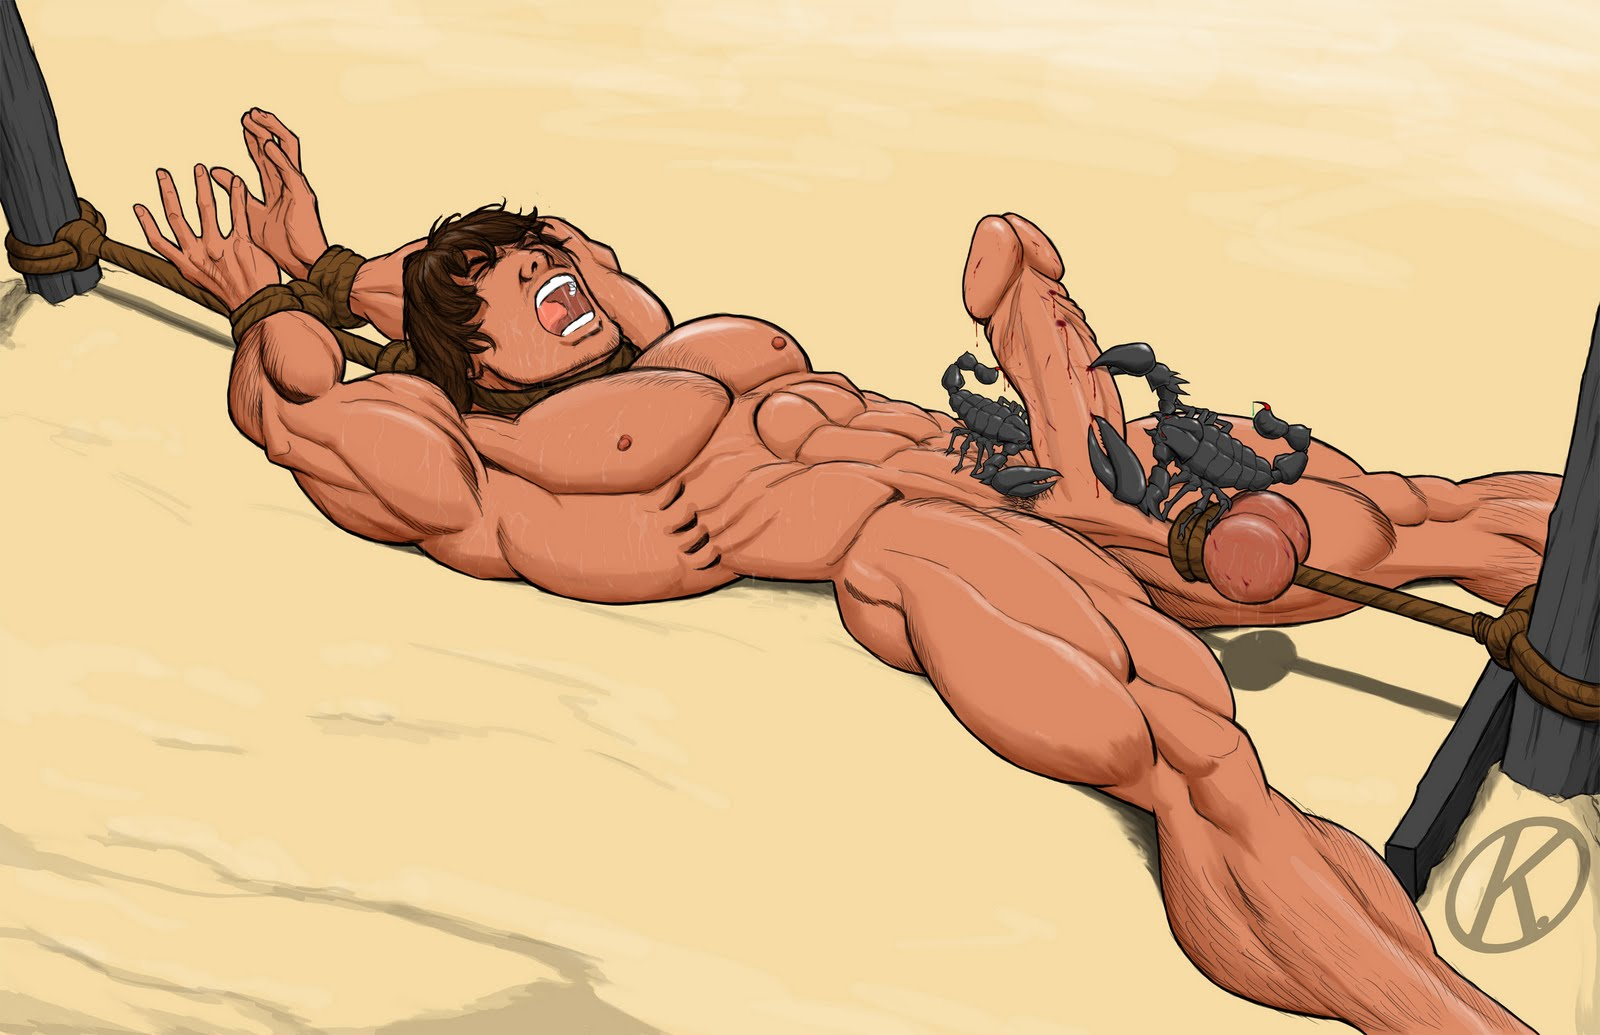 Barbarian gay art sex scenes